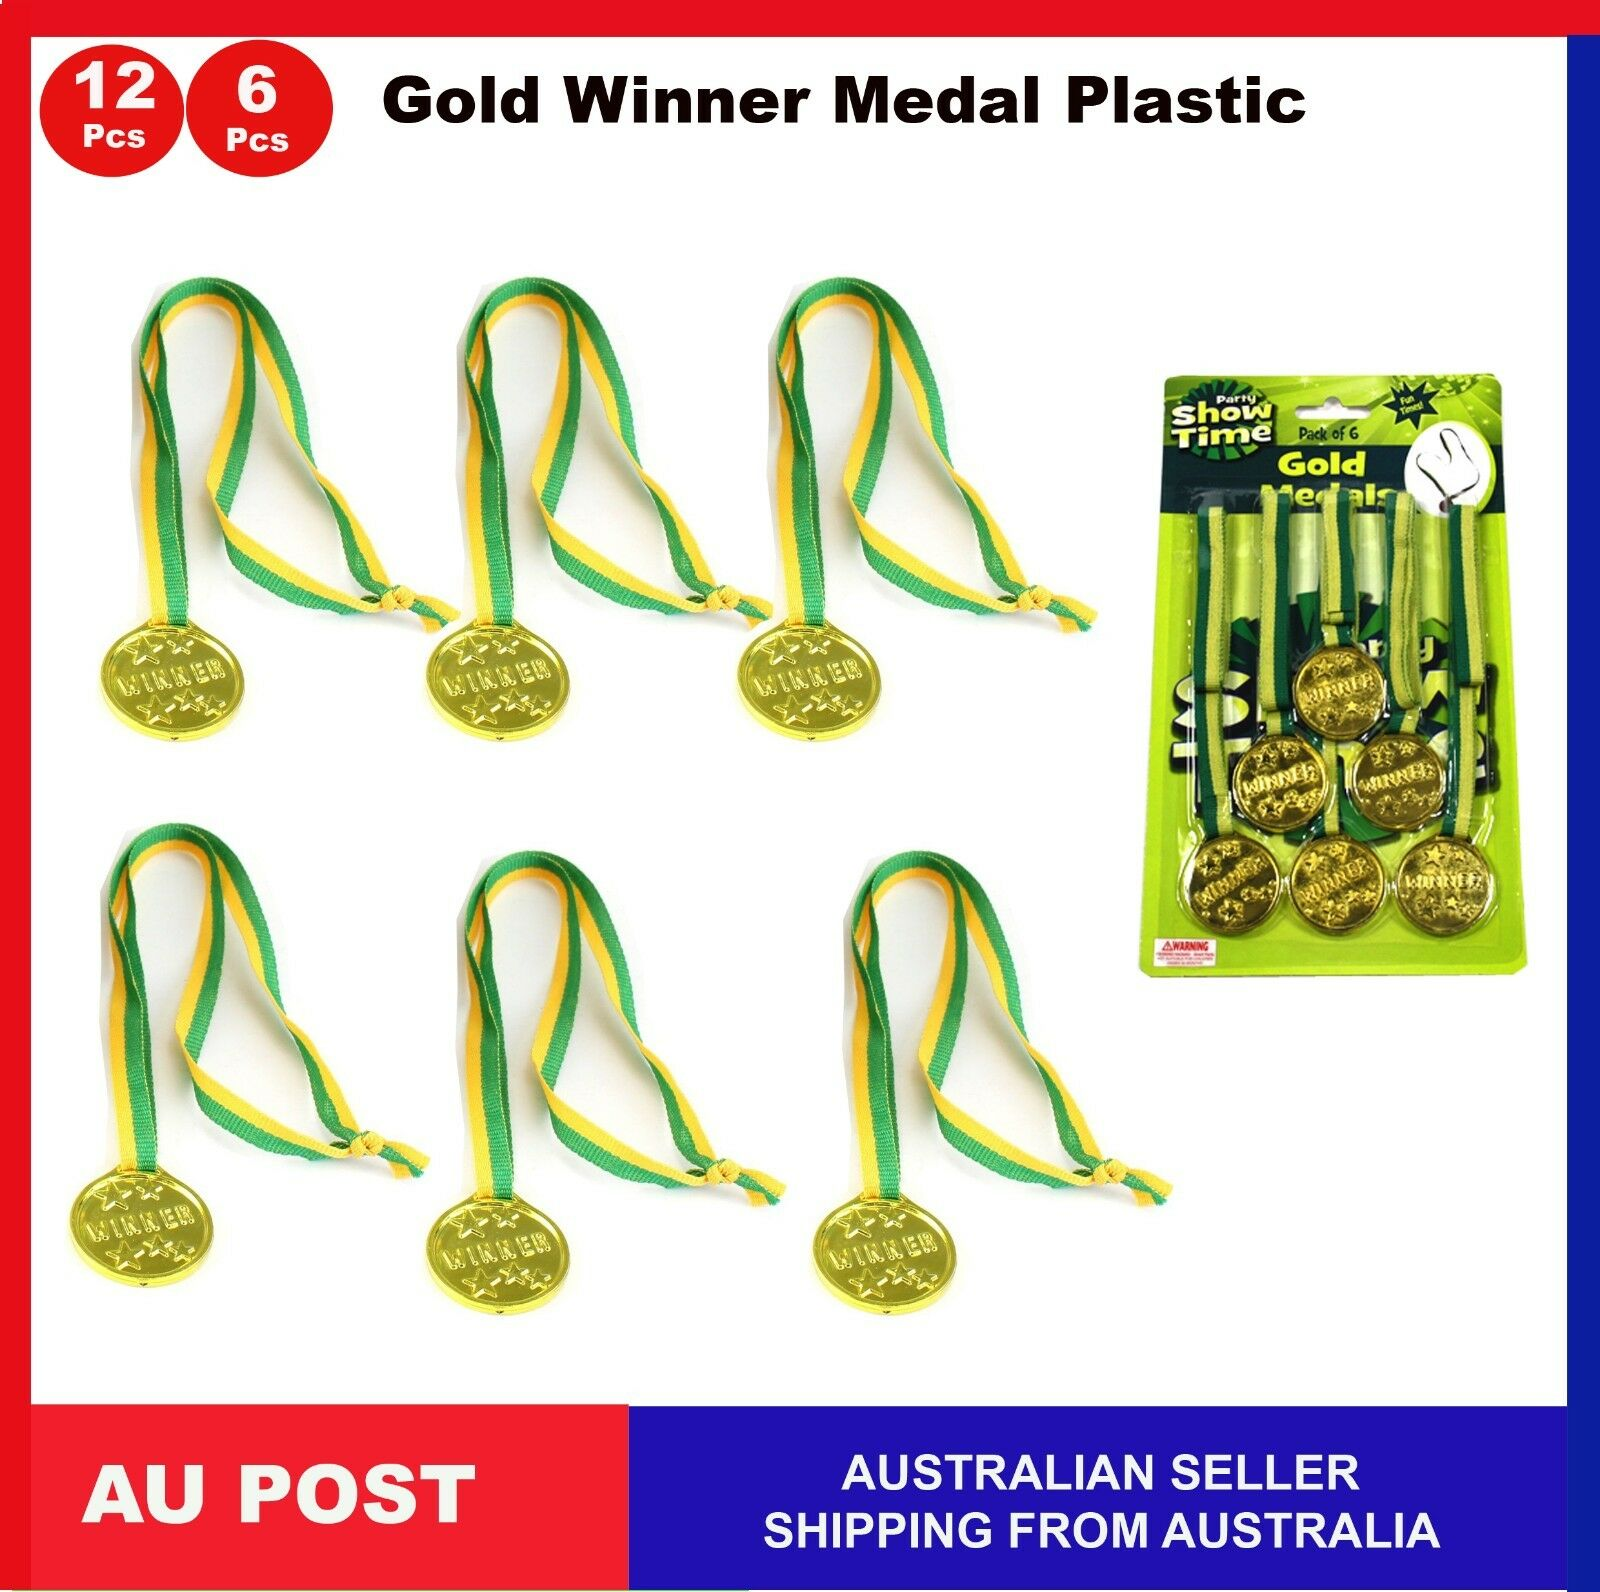 6x Plastic Gold Winners Medal Motivation Kids Sports Day Award Prize Party Toys Party Bag Supplies Party Supplies